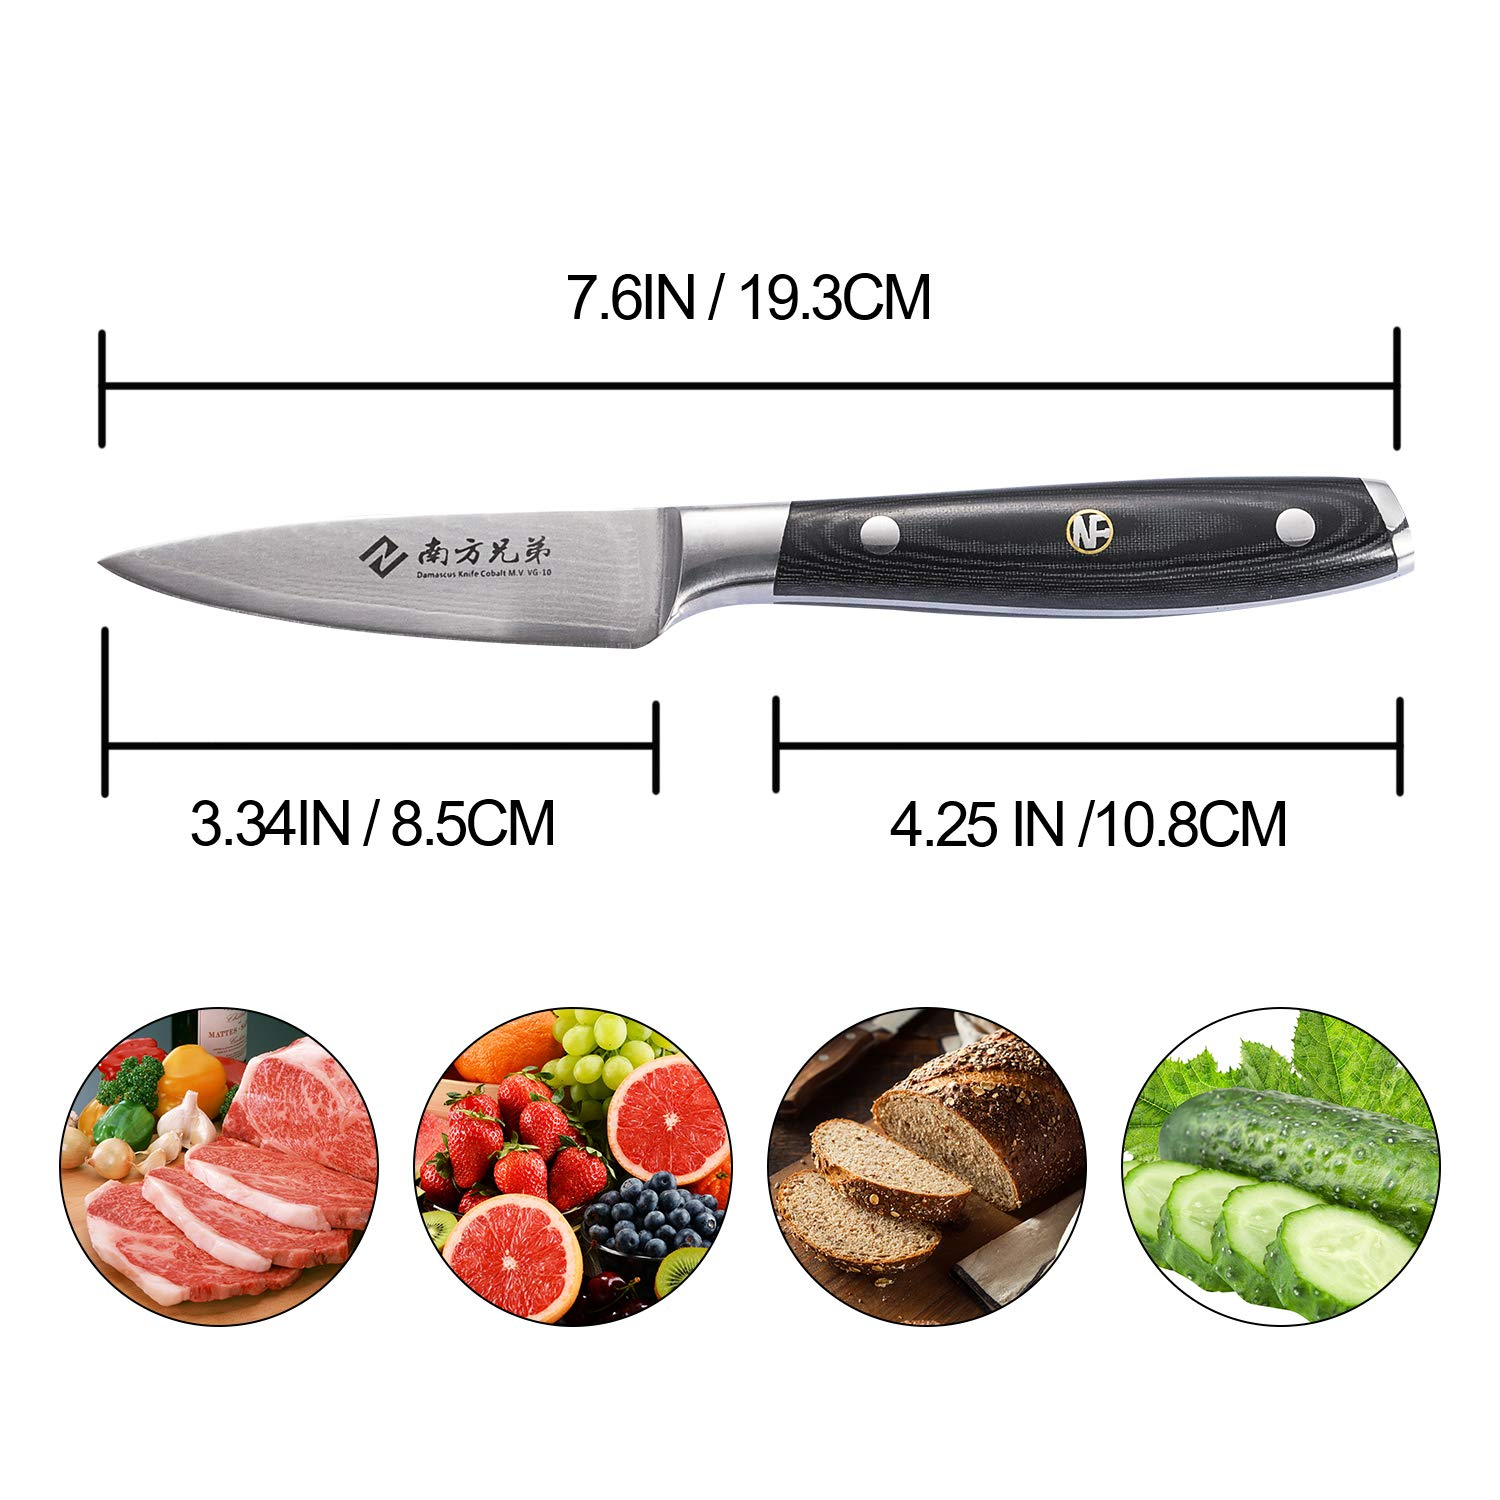 Damascus Paring Knife - 3.5 inch Utility Peeling Knife Ultra Sharp Stainless Steel Fruit Vegetable Cutting Carving Knives by Nanfang Brothers (Image #3)